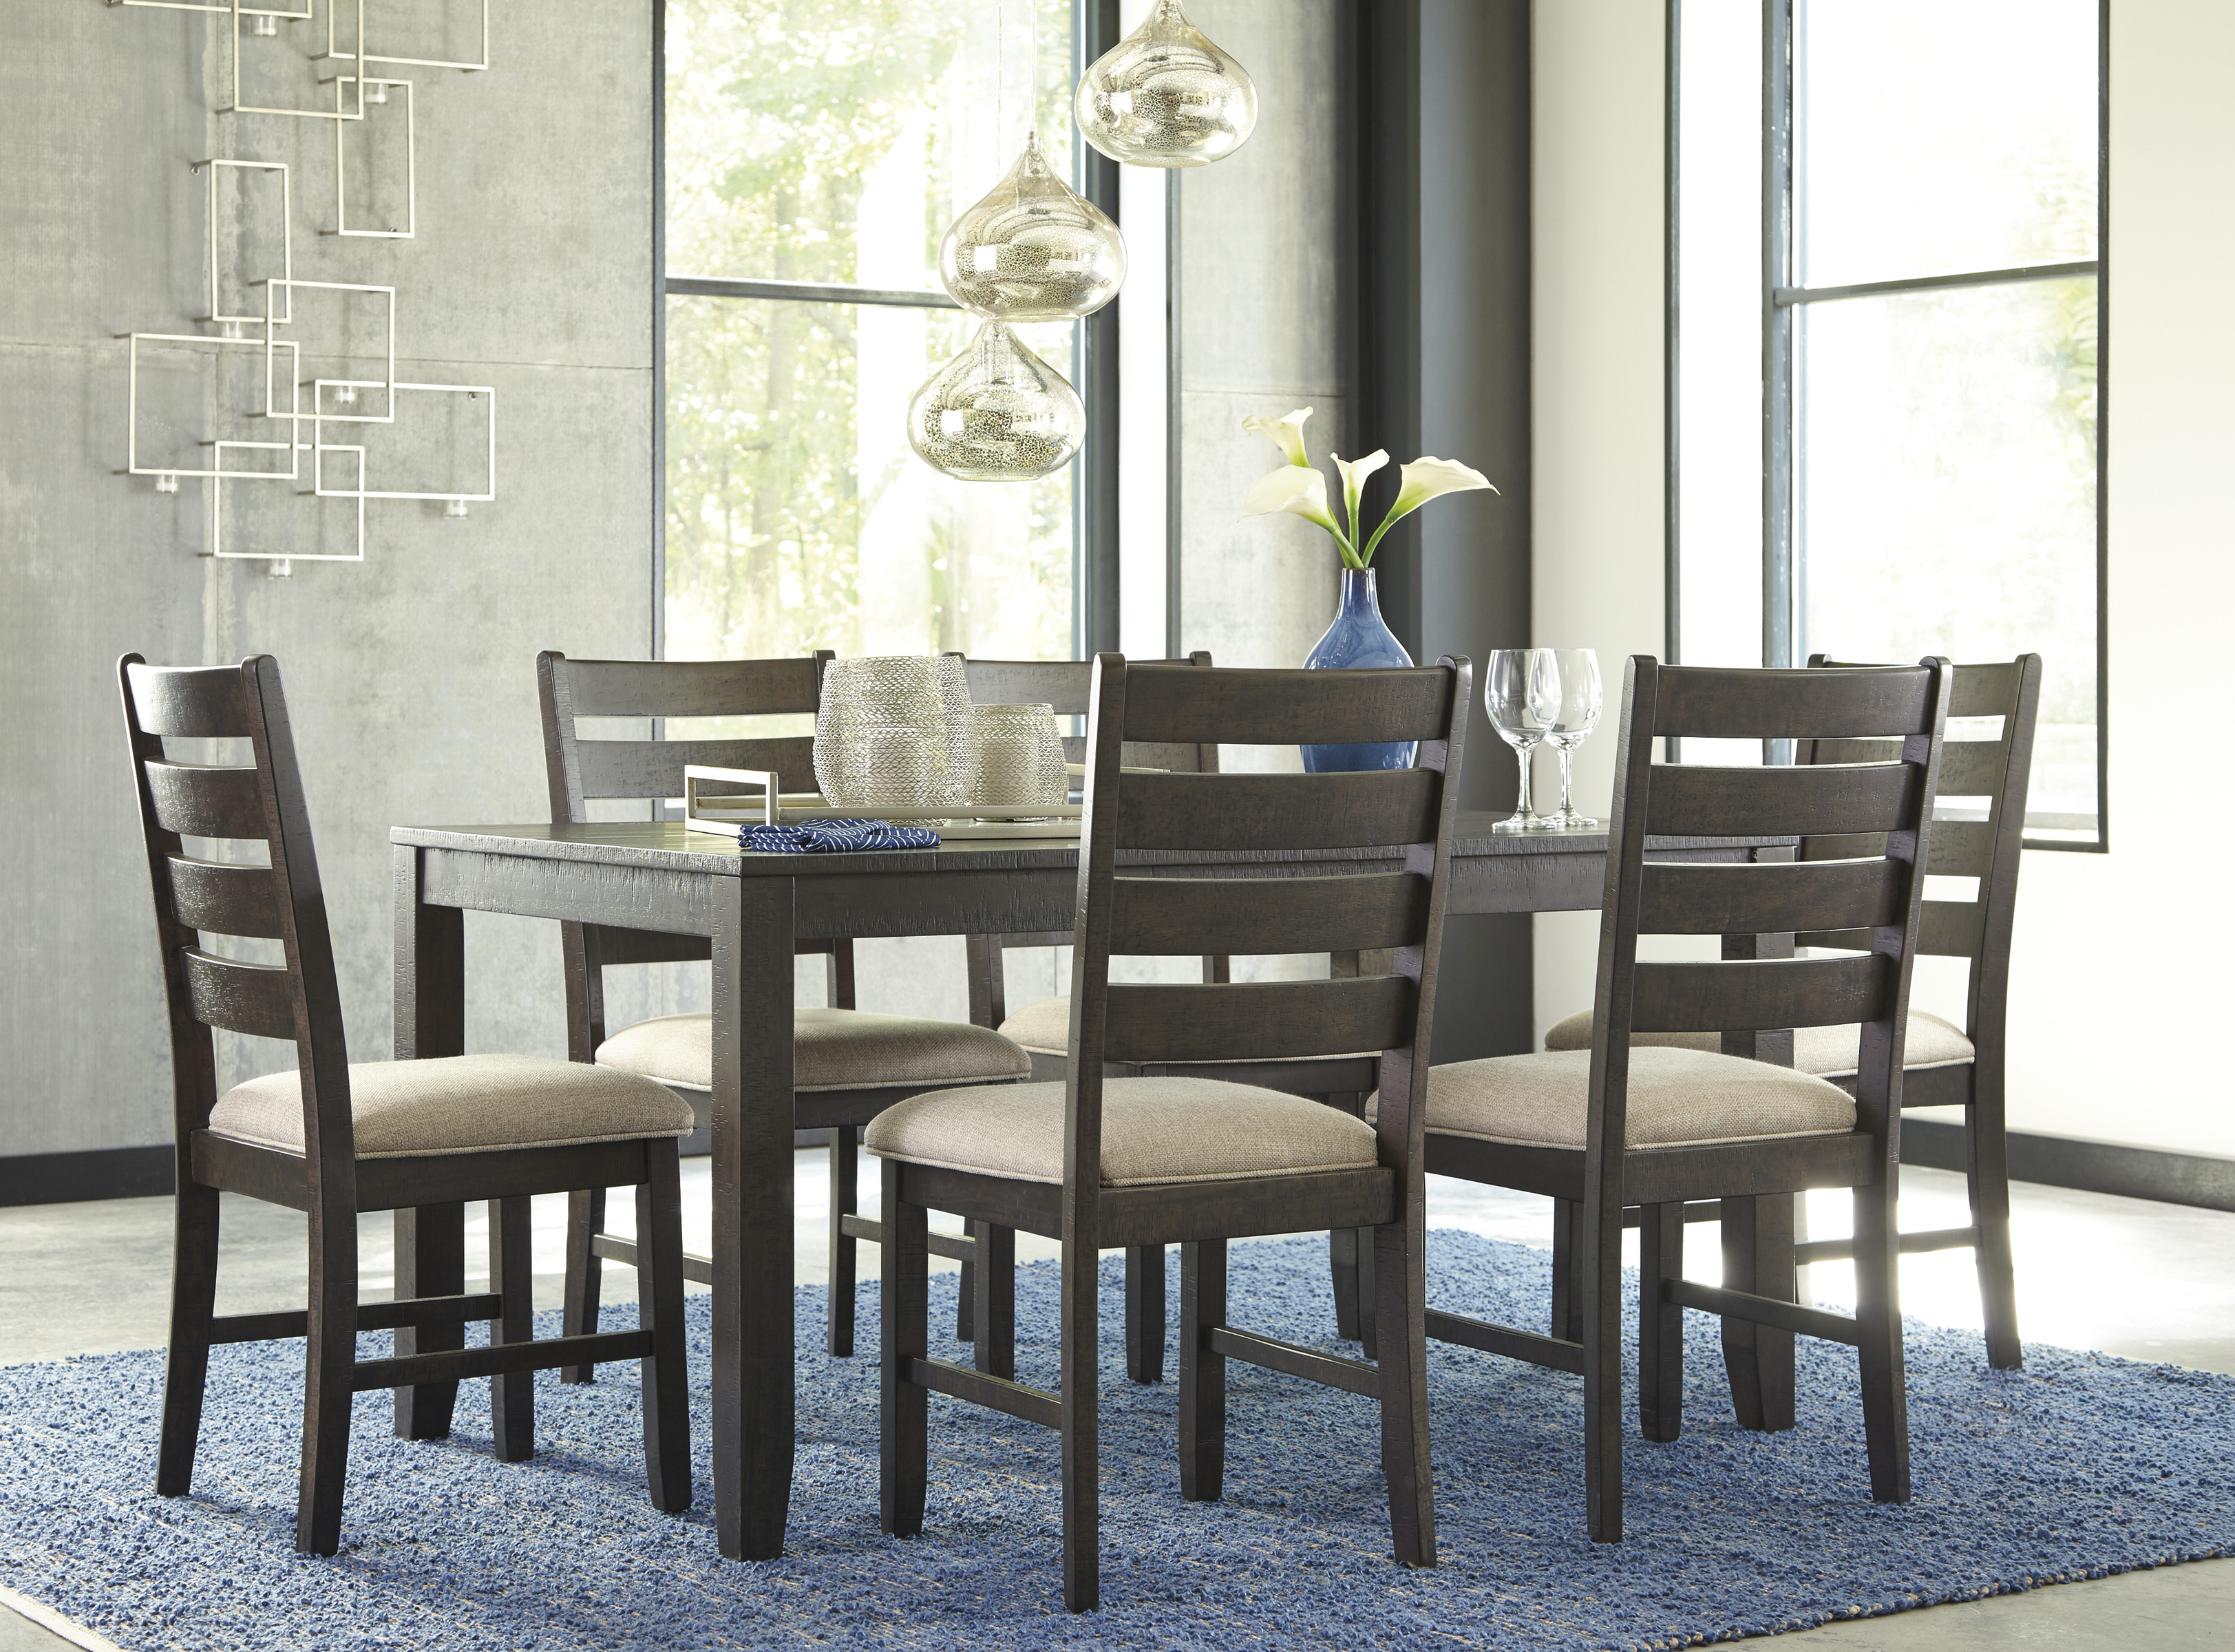 Rokane Casual 7 Pc Dining Table Set With Six Chairs